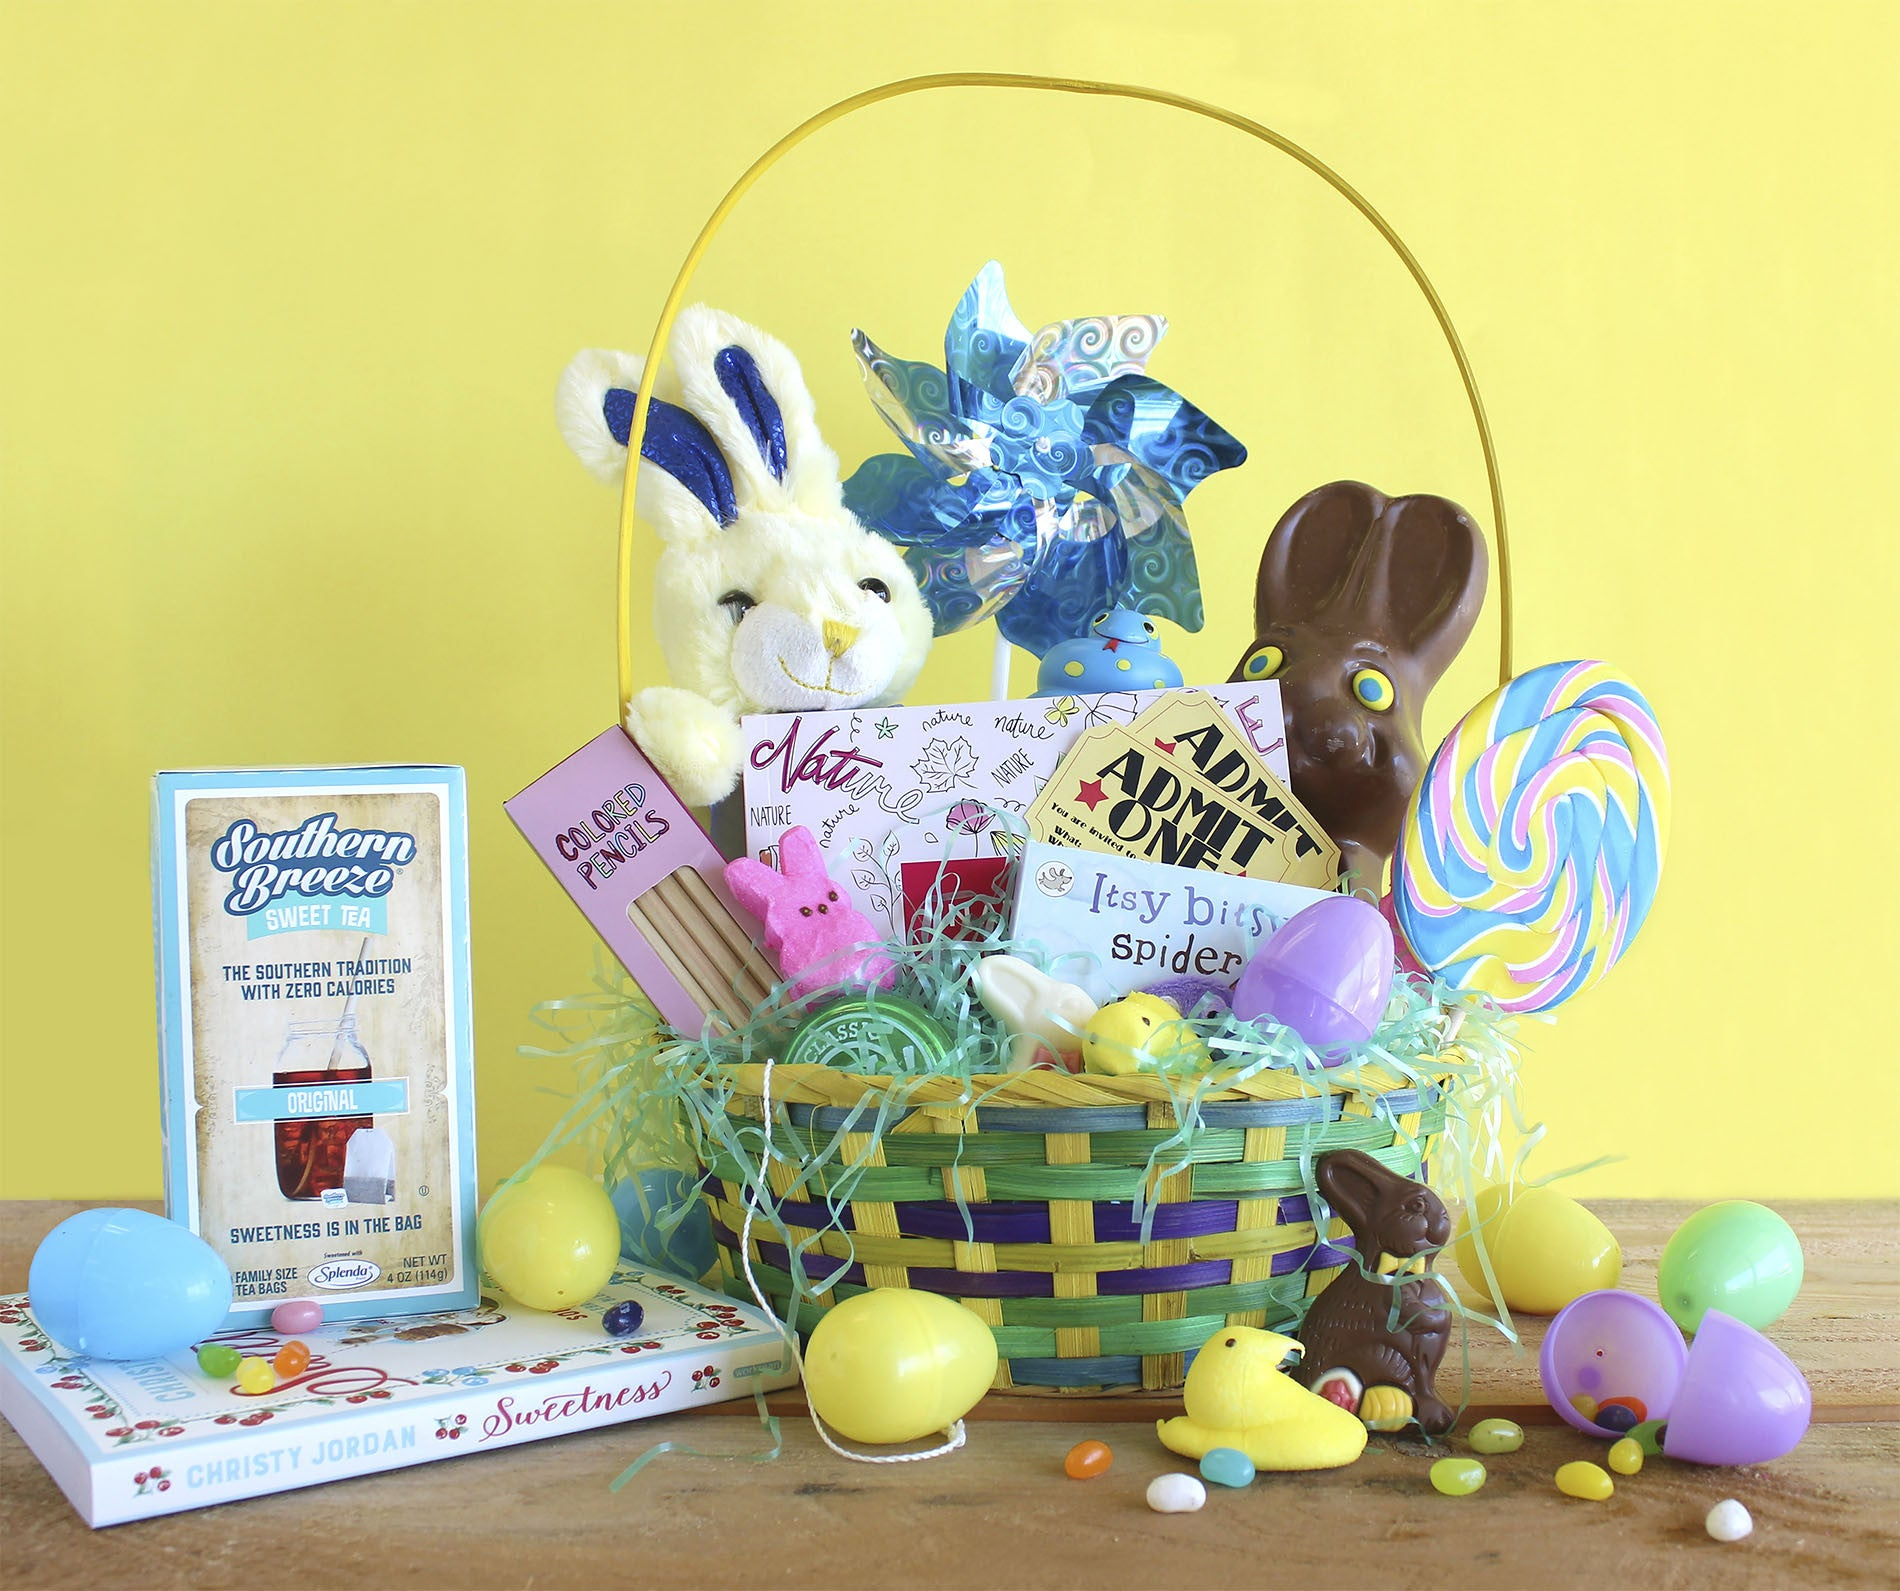 Easter basket essentials southern breeze sweet tea there you have it yall our easter basket essentials easy right what are some of your easter basket favorites tell us in the comments below negle Choice Image